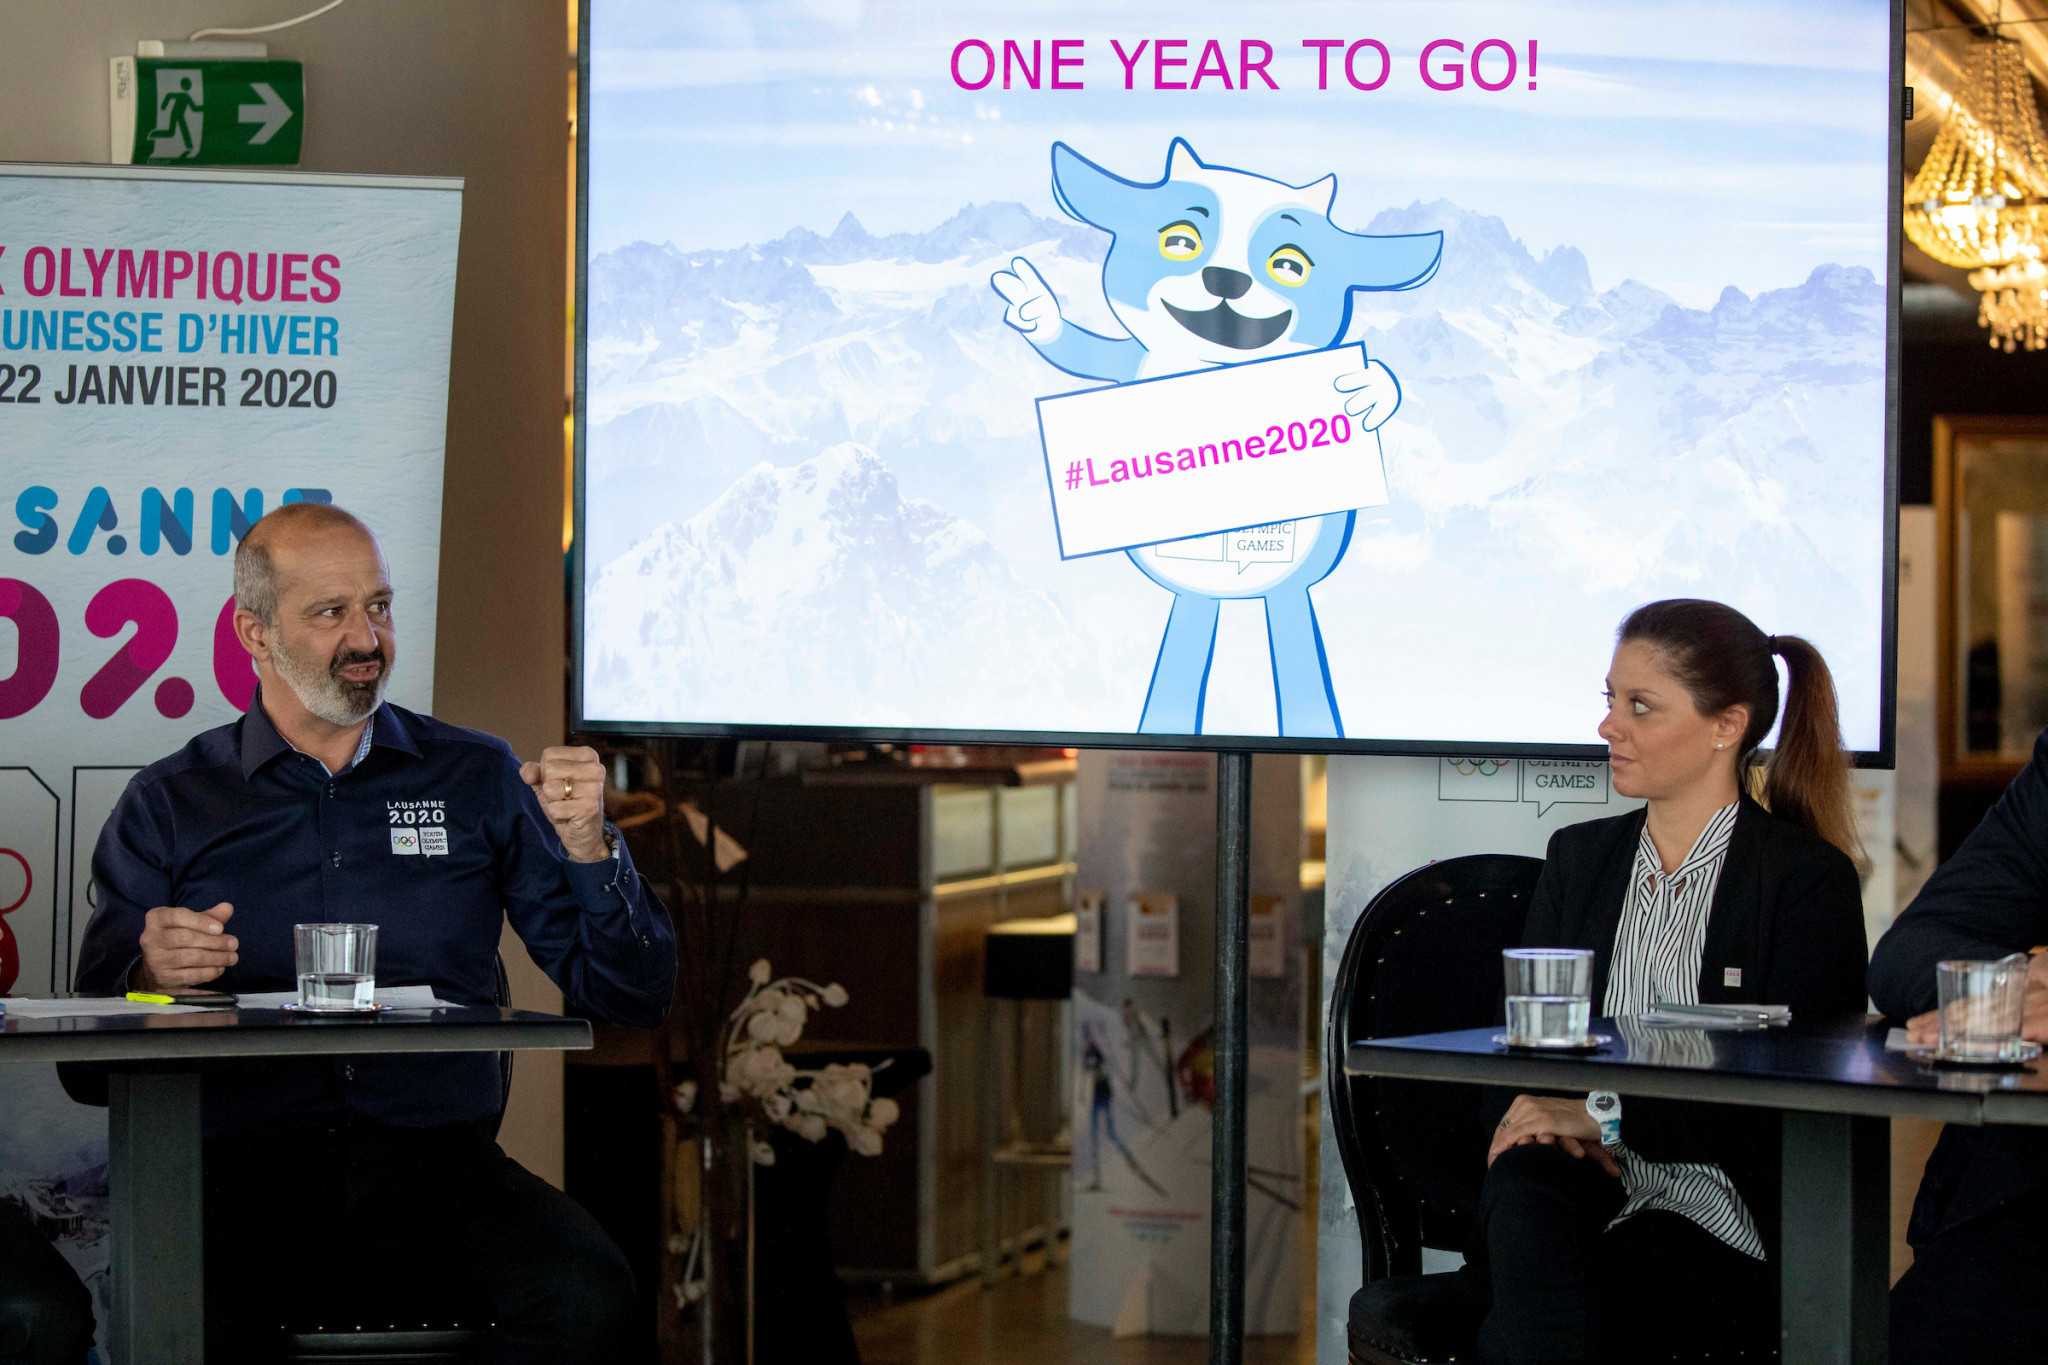 Organisers provided an update on their progress for next year's Winter Youth Olympic Games ©IOC